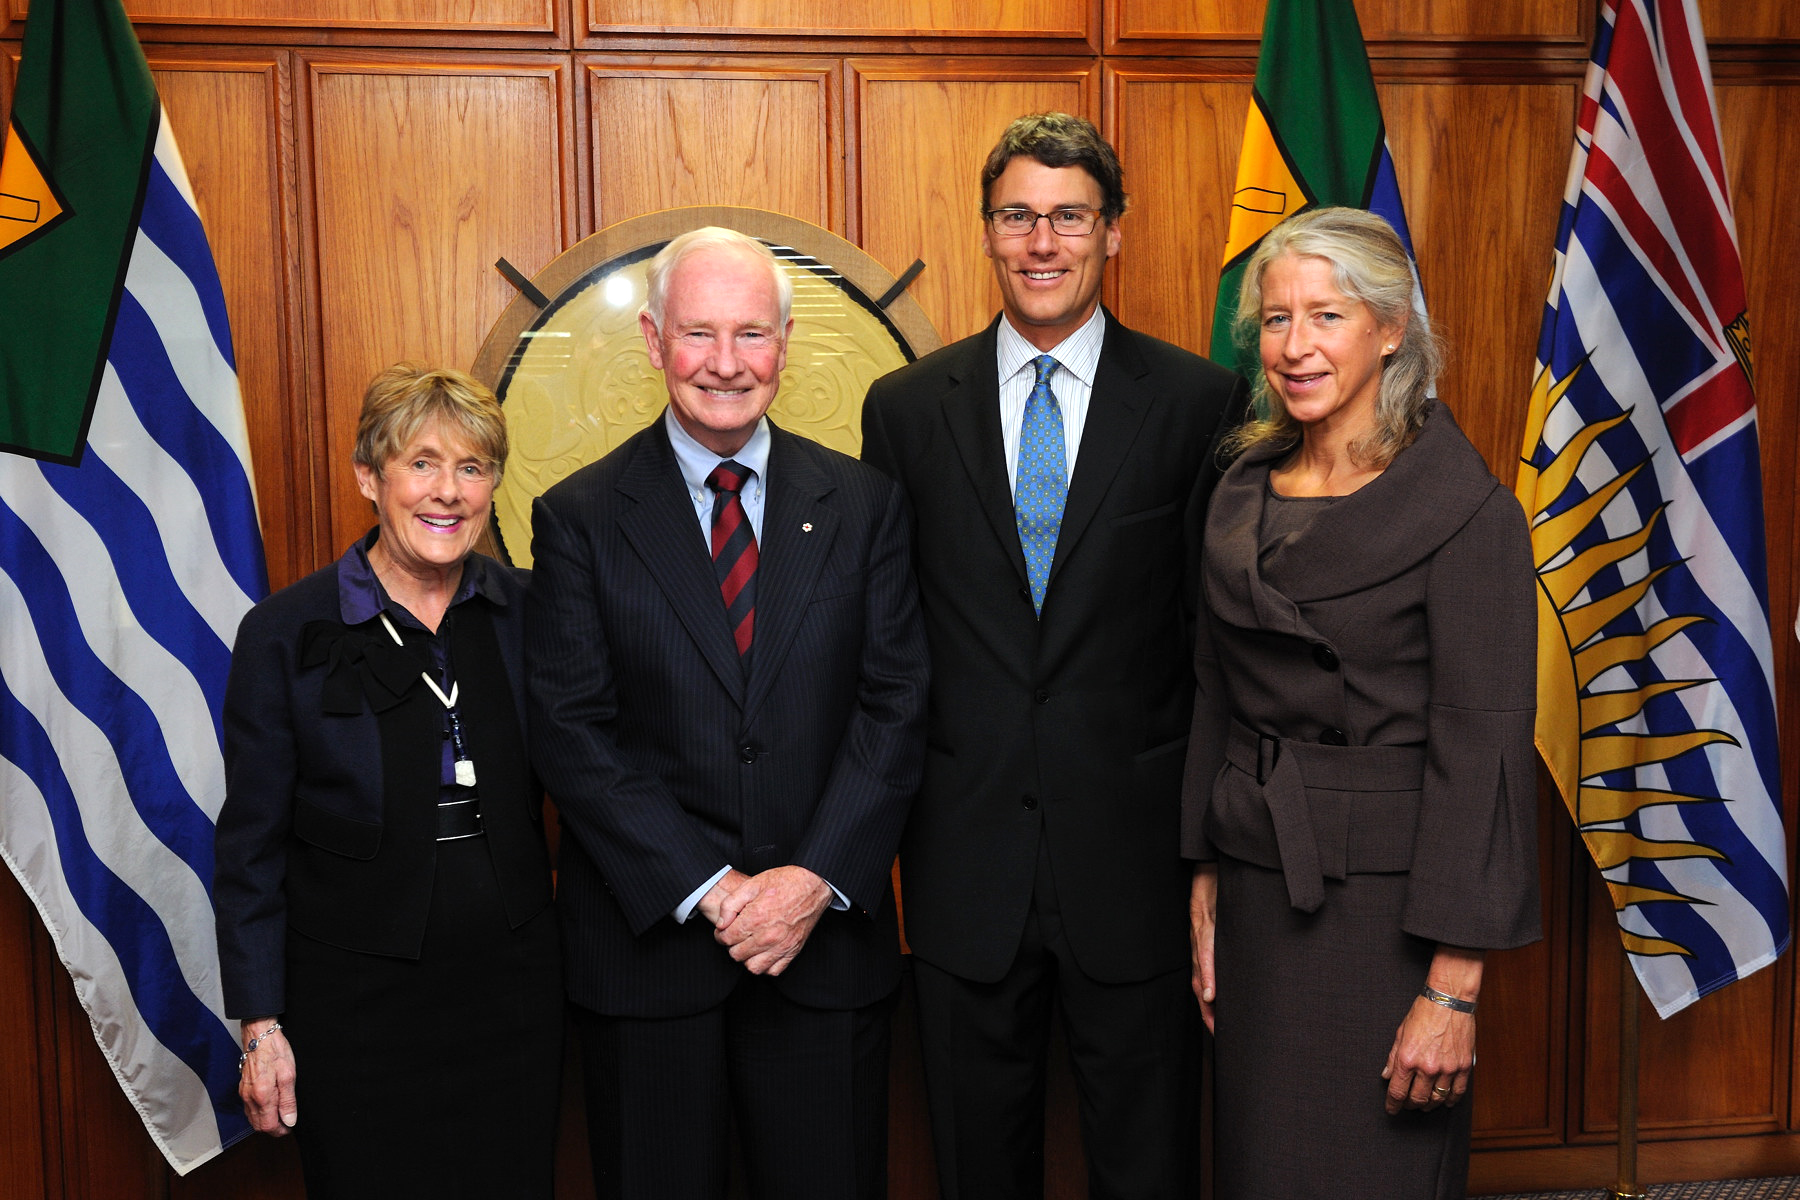 Their Excellencies met with His Worship Gregor Robertson, Mayor of Vancouver, and his wife, Mrs. Amy Robertson.